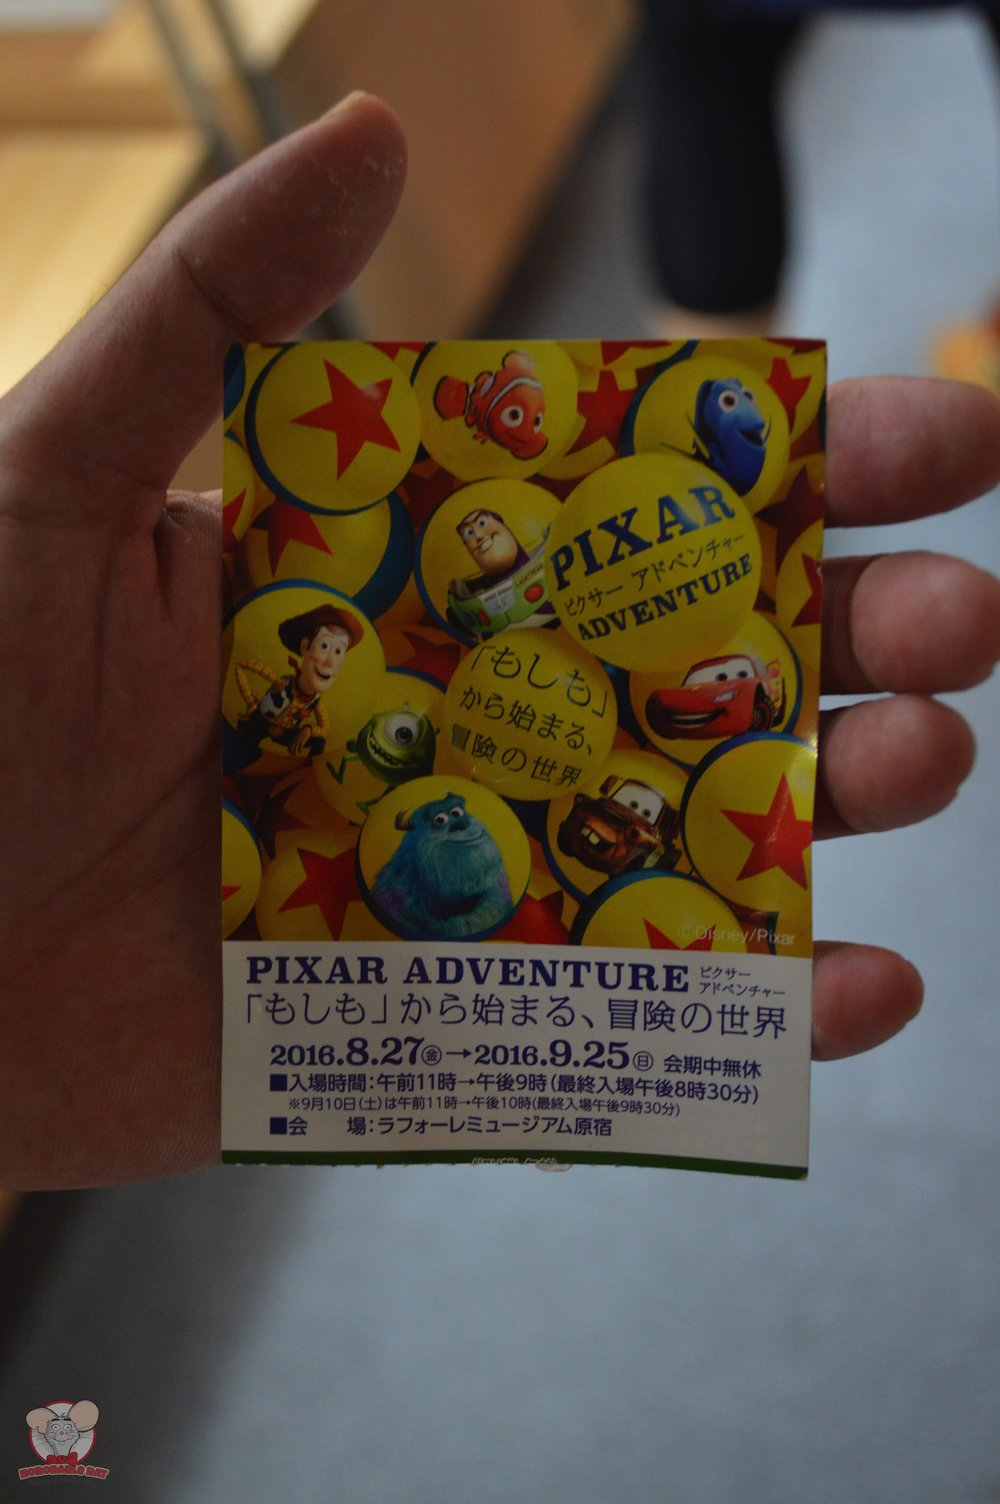 Pixar Adventure Ticket